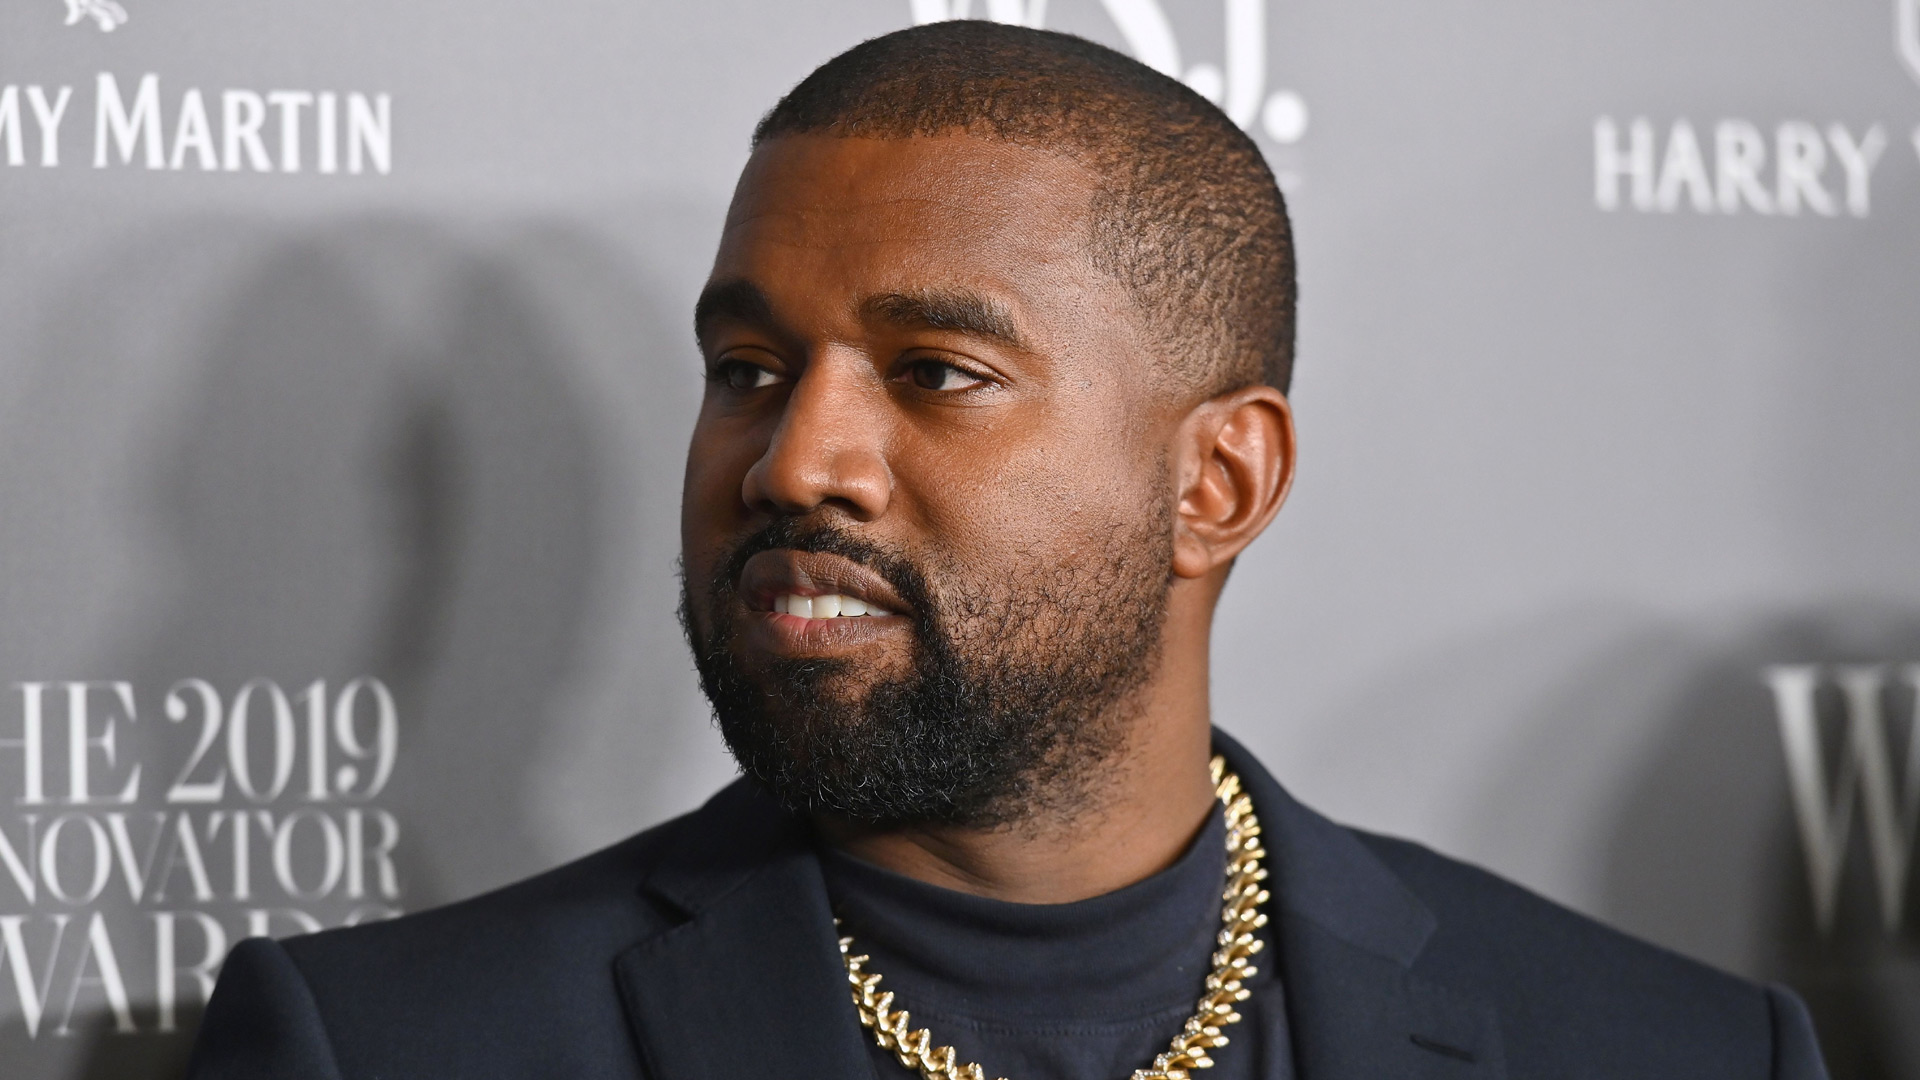 Kanye West Is Dropping Out Of The 2020 Presidential Race According To A Report